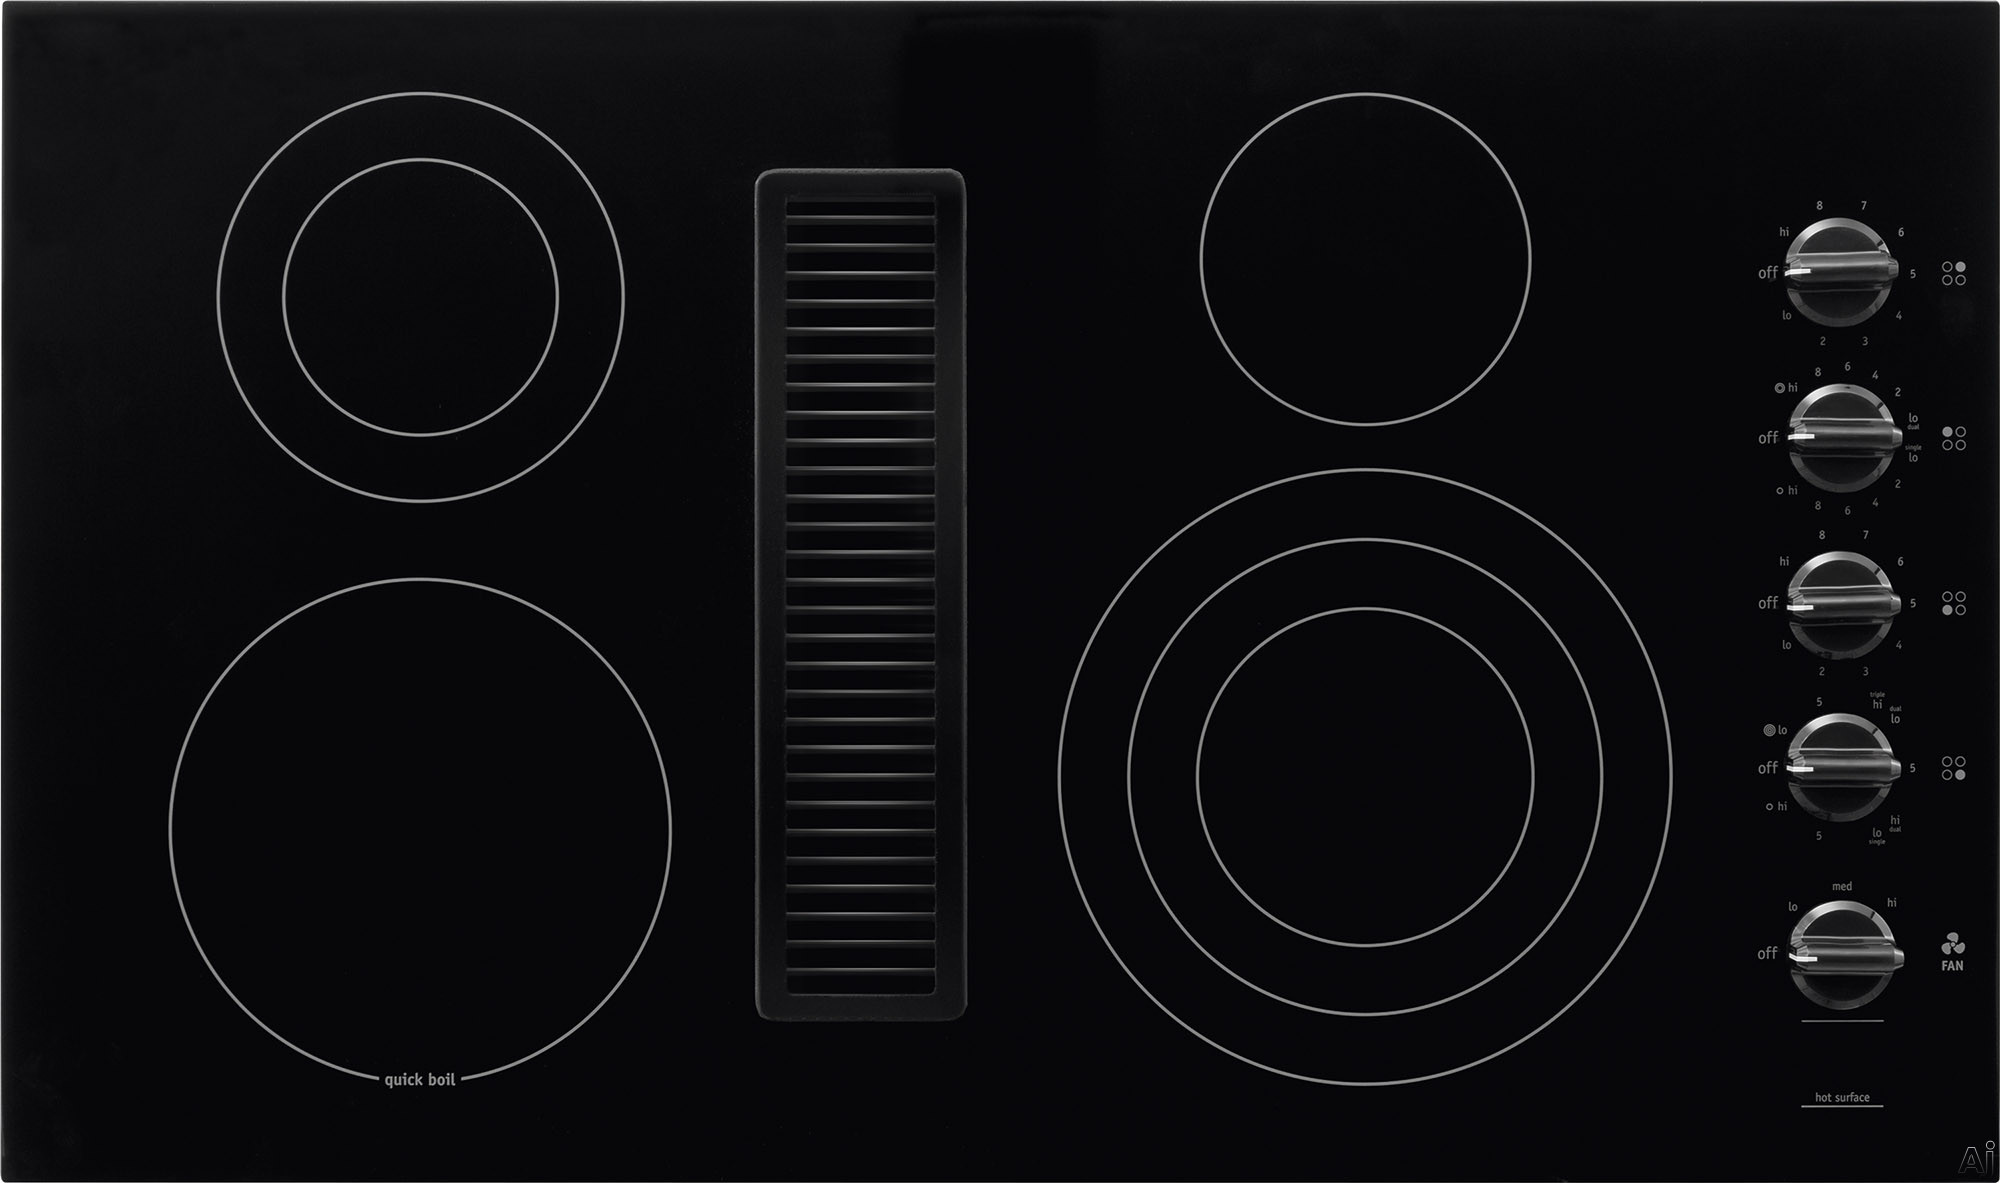 Frigidaire RC36DE60PB 36 Inch Electric Cooktop with 4 Smoothtop Burners, Downdraft Ventilation System, 500 CFM Fan, PowerPlus Boil Burner and Ready-Select Control Knobs